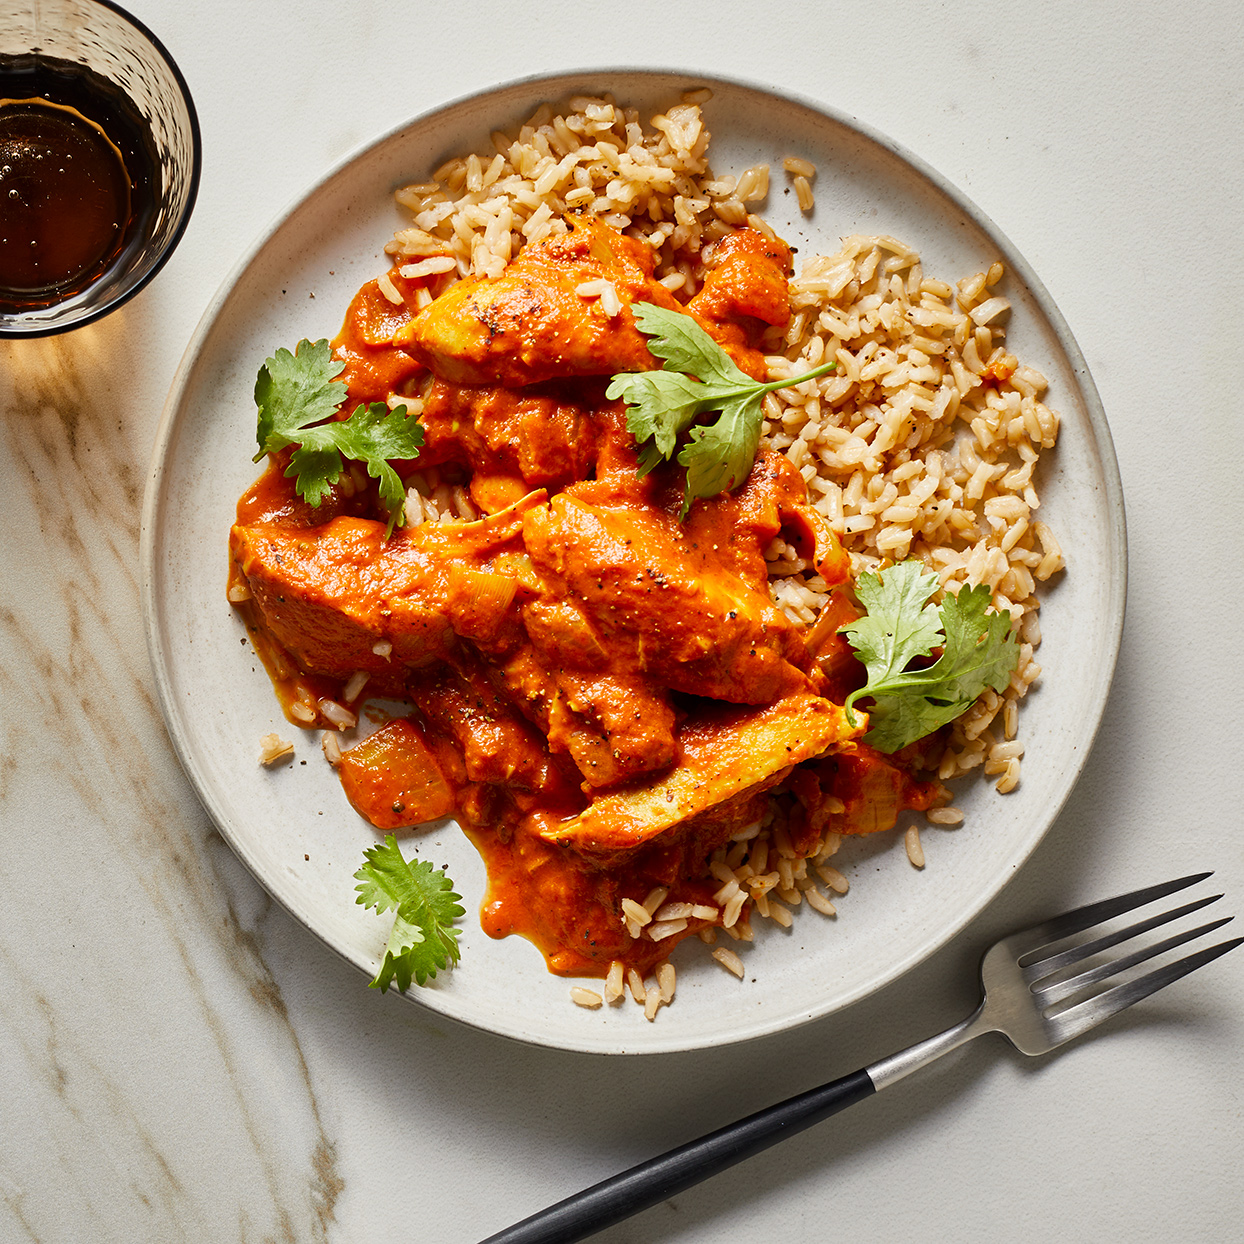 It's hard to believe you can get such a full-flavored, deeply spiced chicken tikka masala in just 30 minutes, but we did it! And, like the title says, this classic chicken tikka masala recipe really is as easy as it gets. Source: EatingWell.com, September 2019